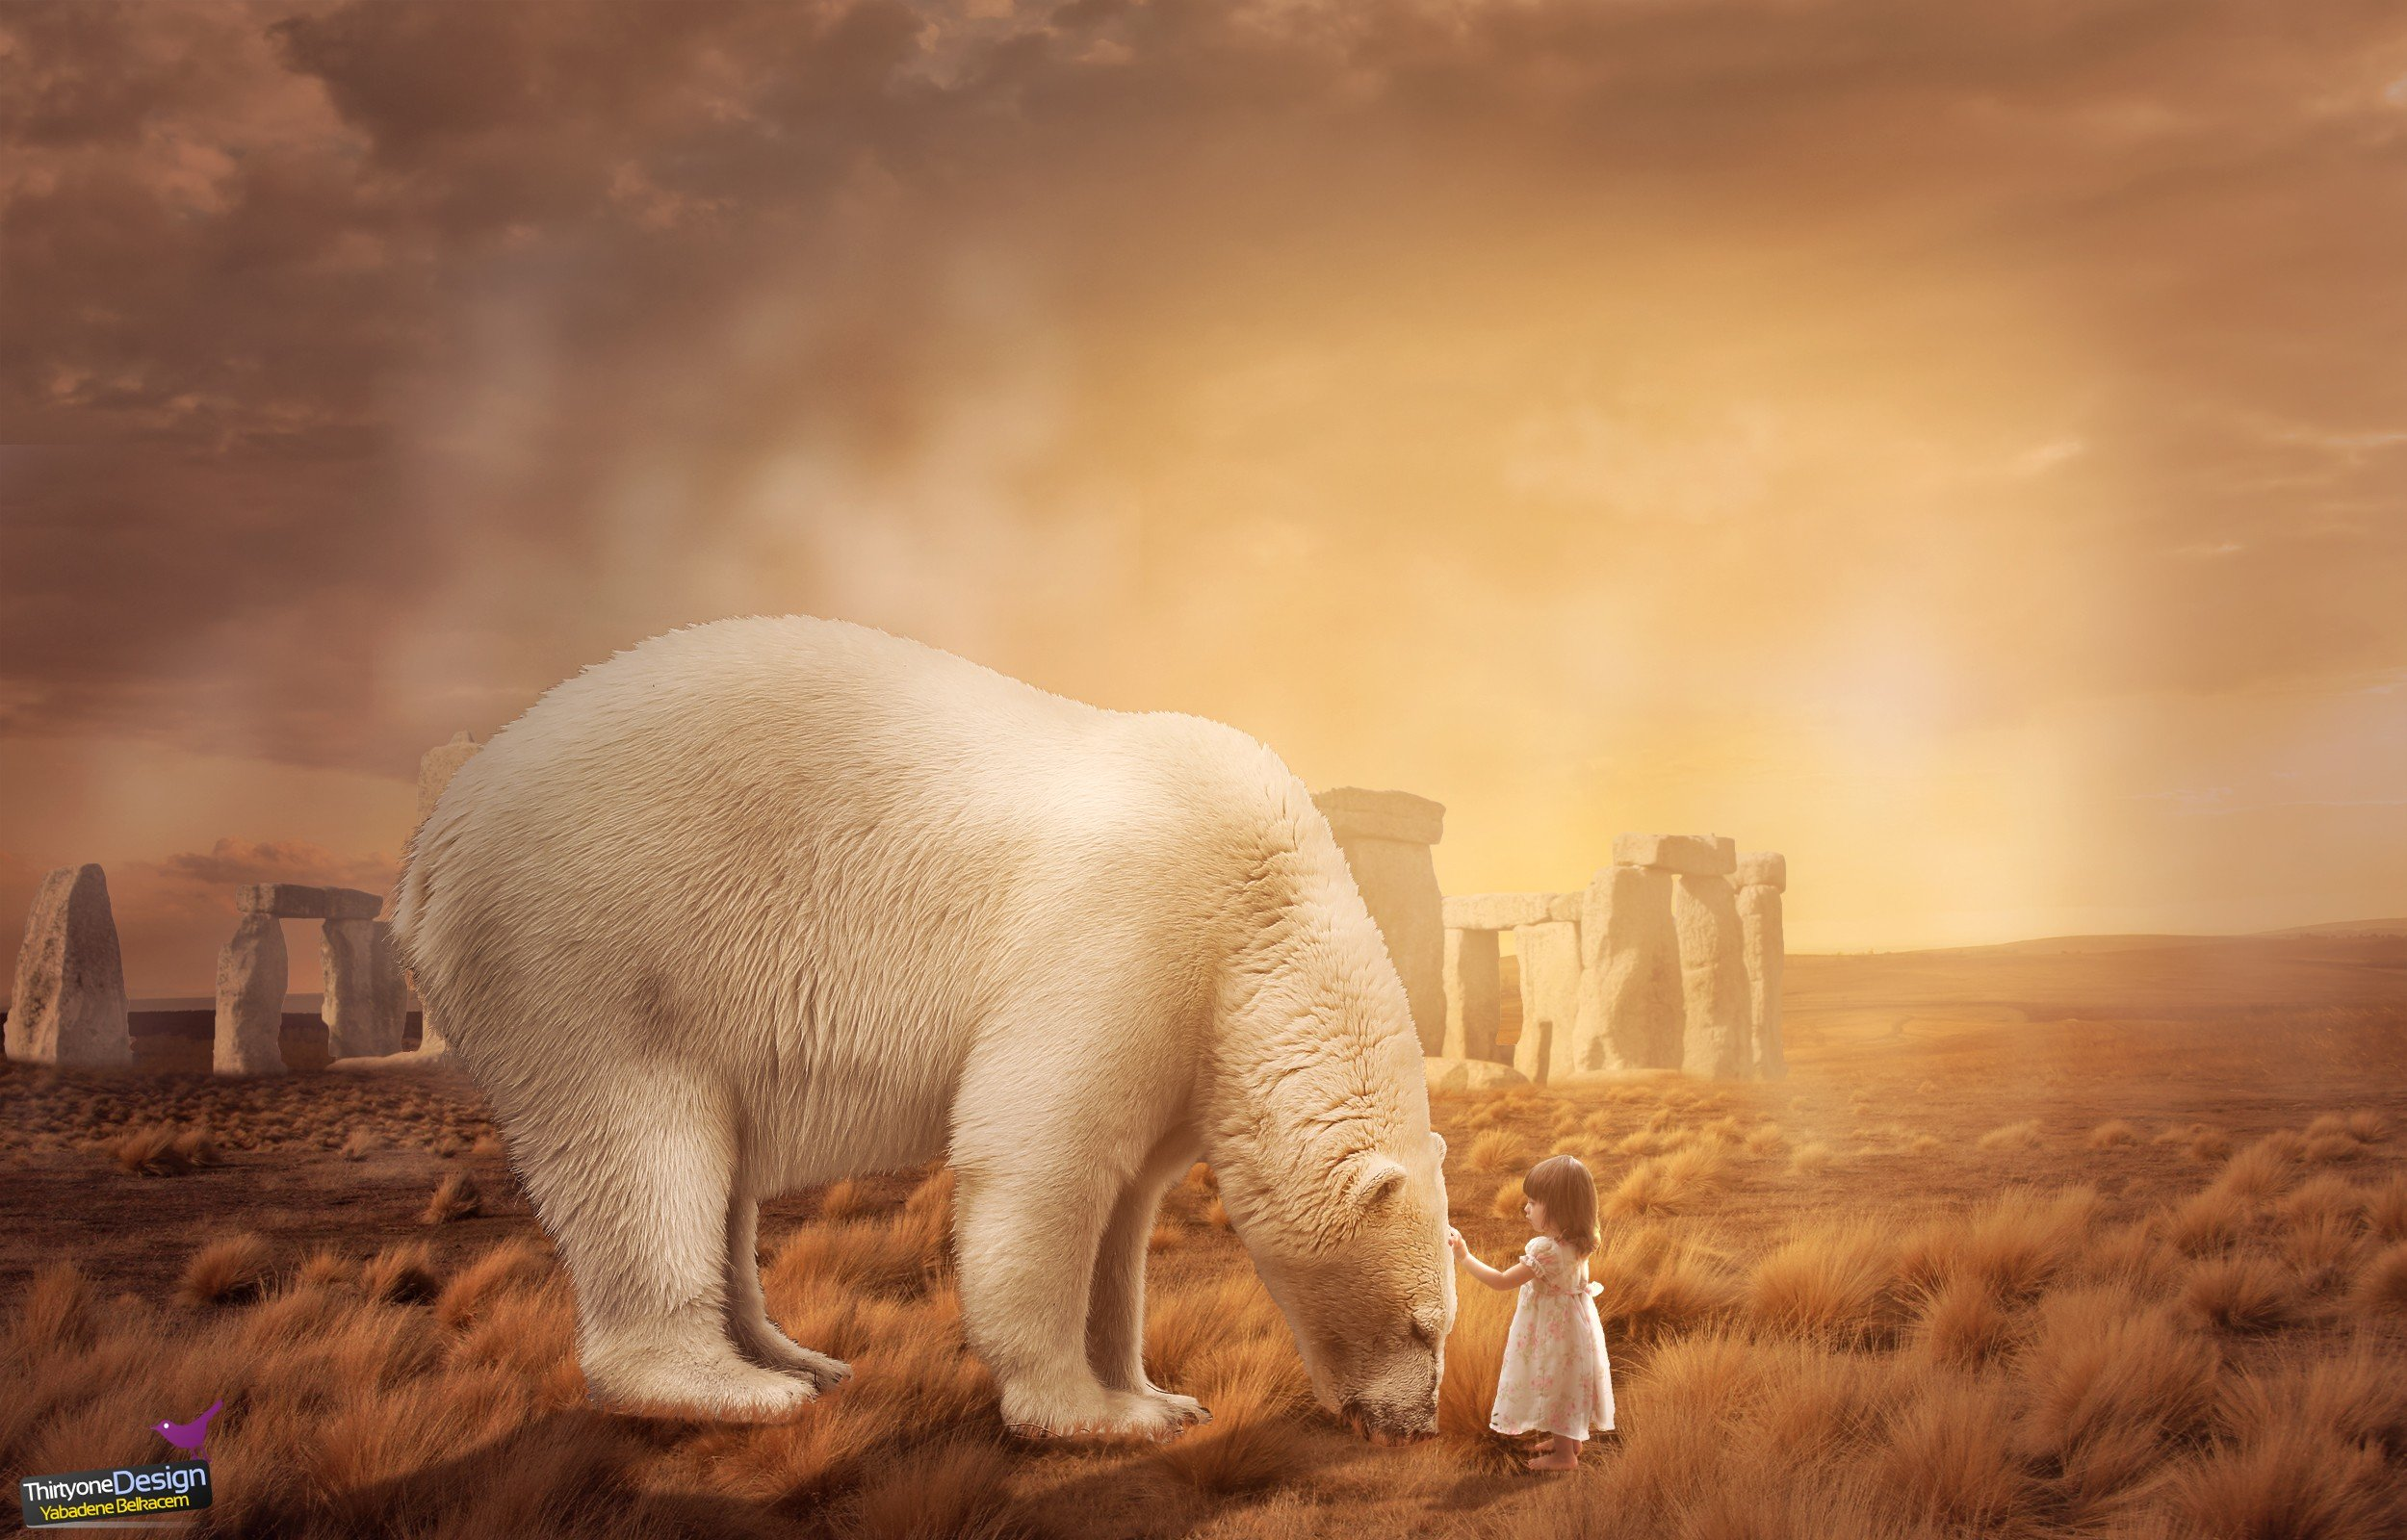 children, Bears, Landscape, Photo manipulation, Polar bears Wallpaper